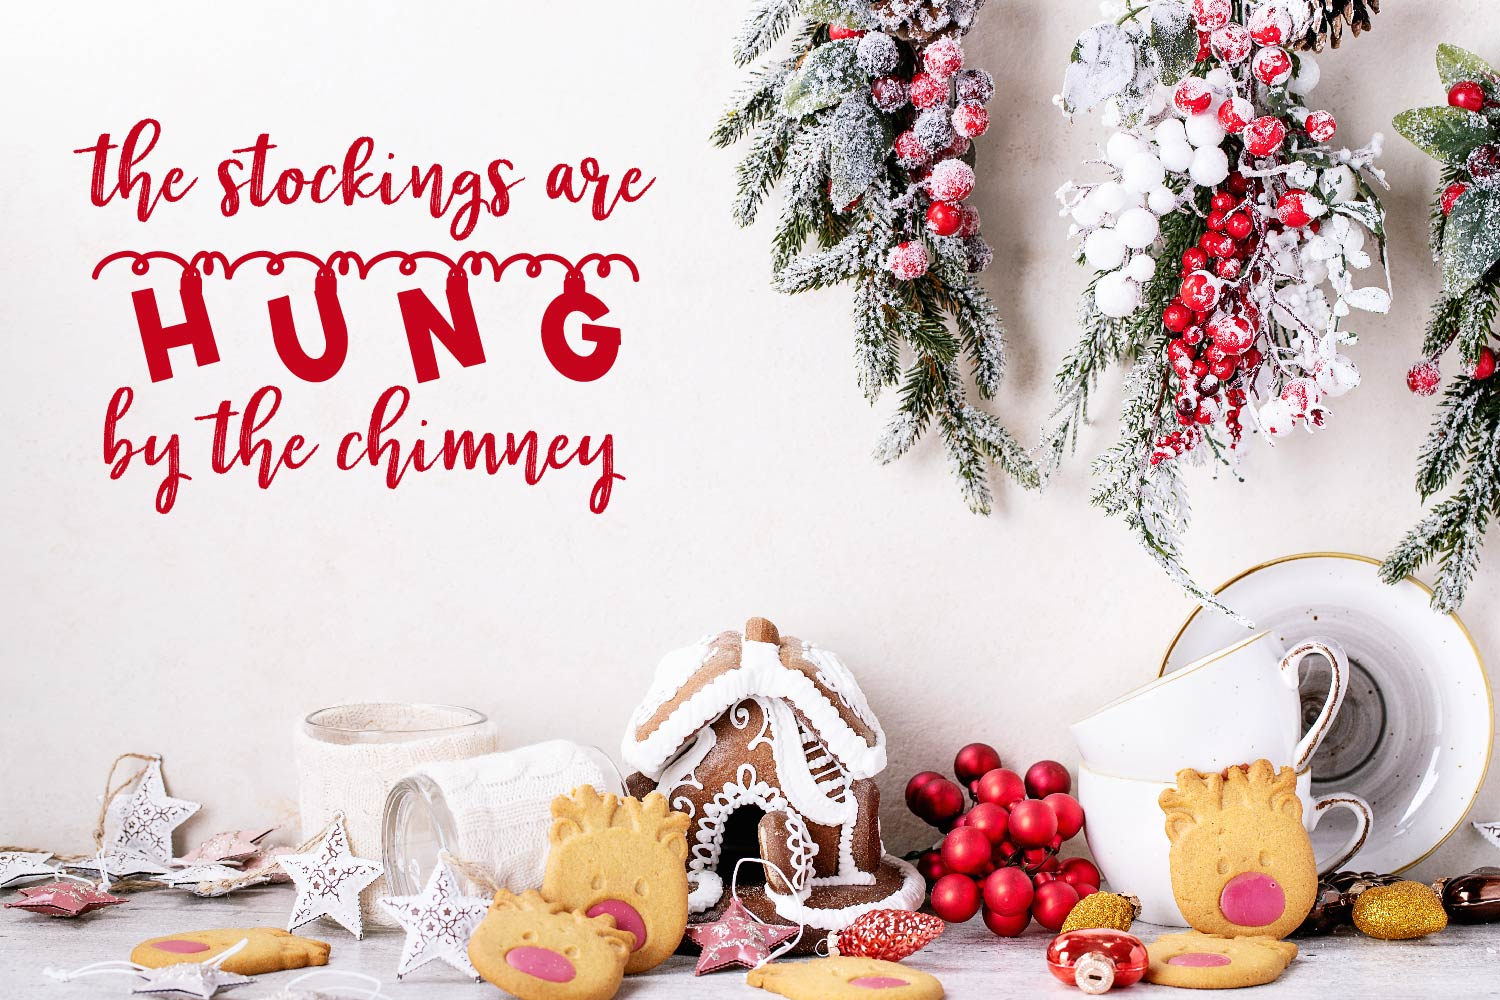 Chime - A Hanging Christmas Ornament Font example image 7